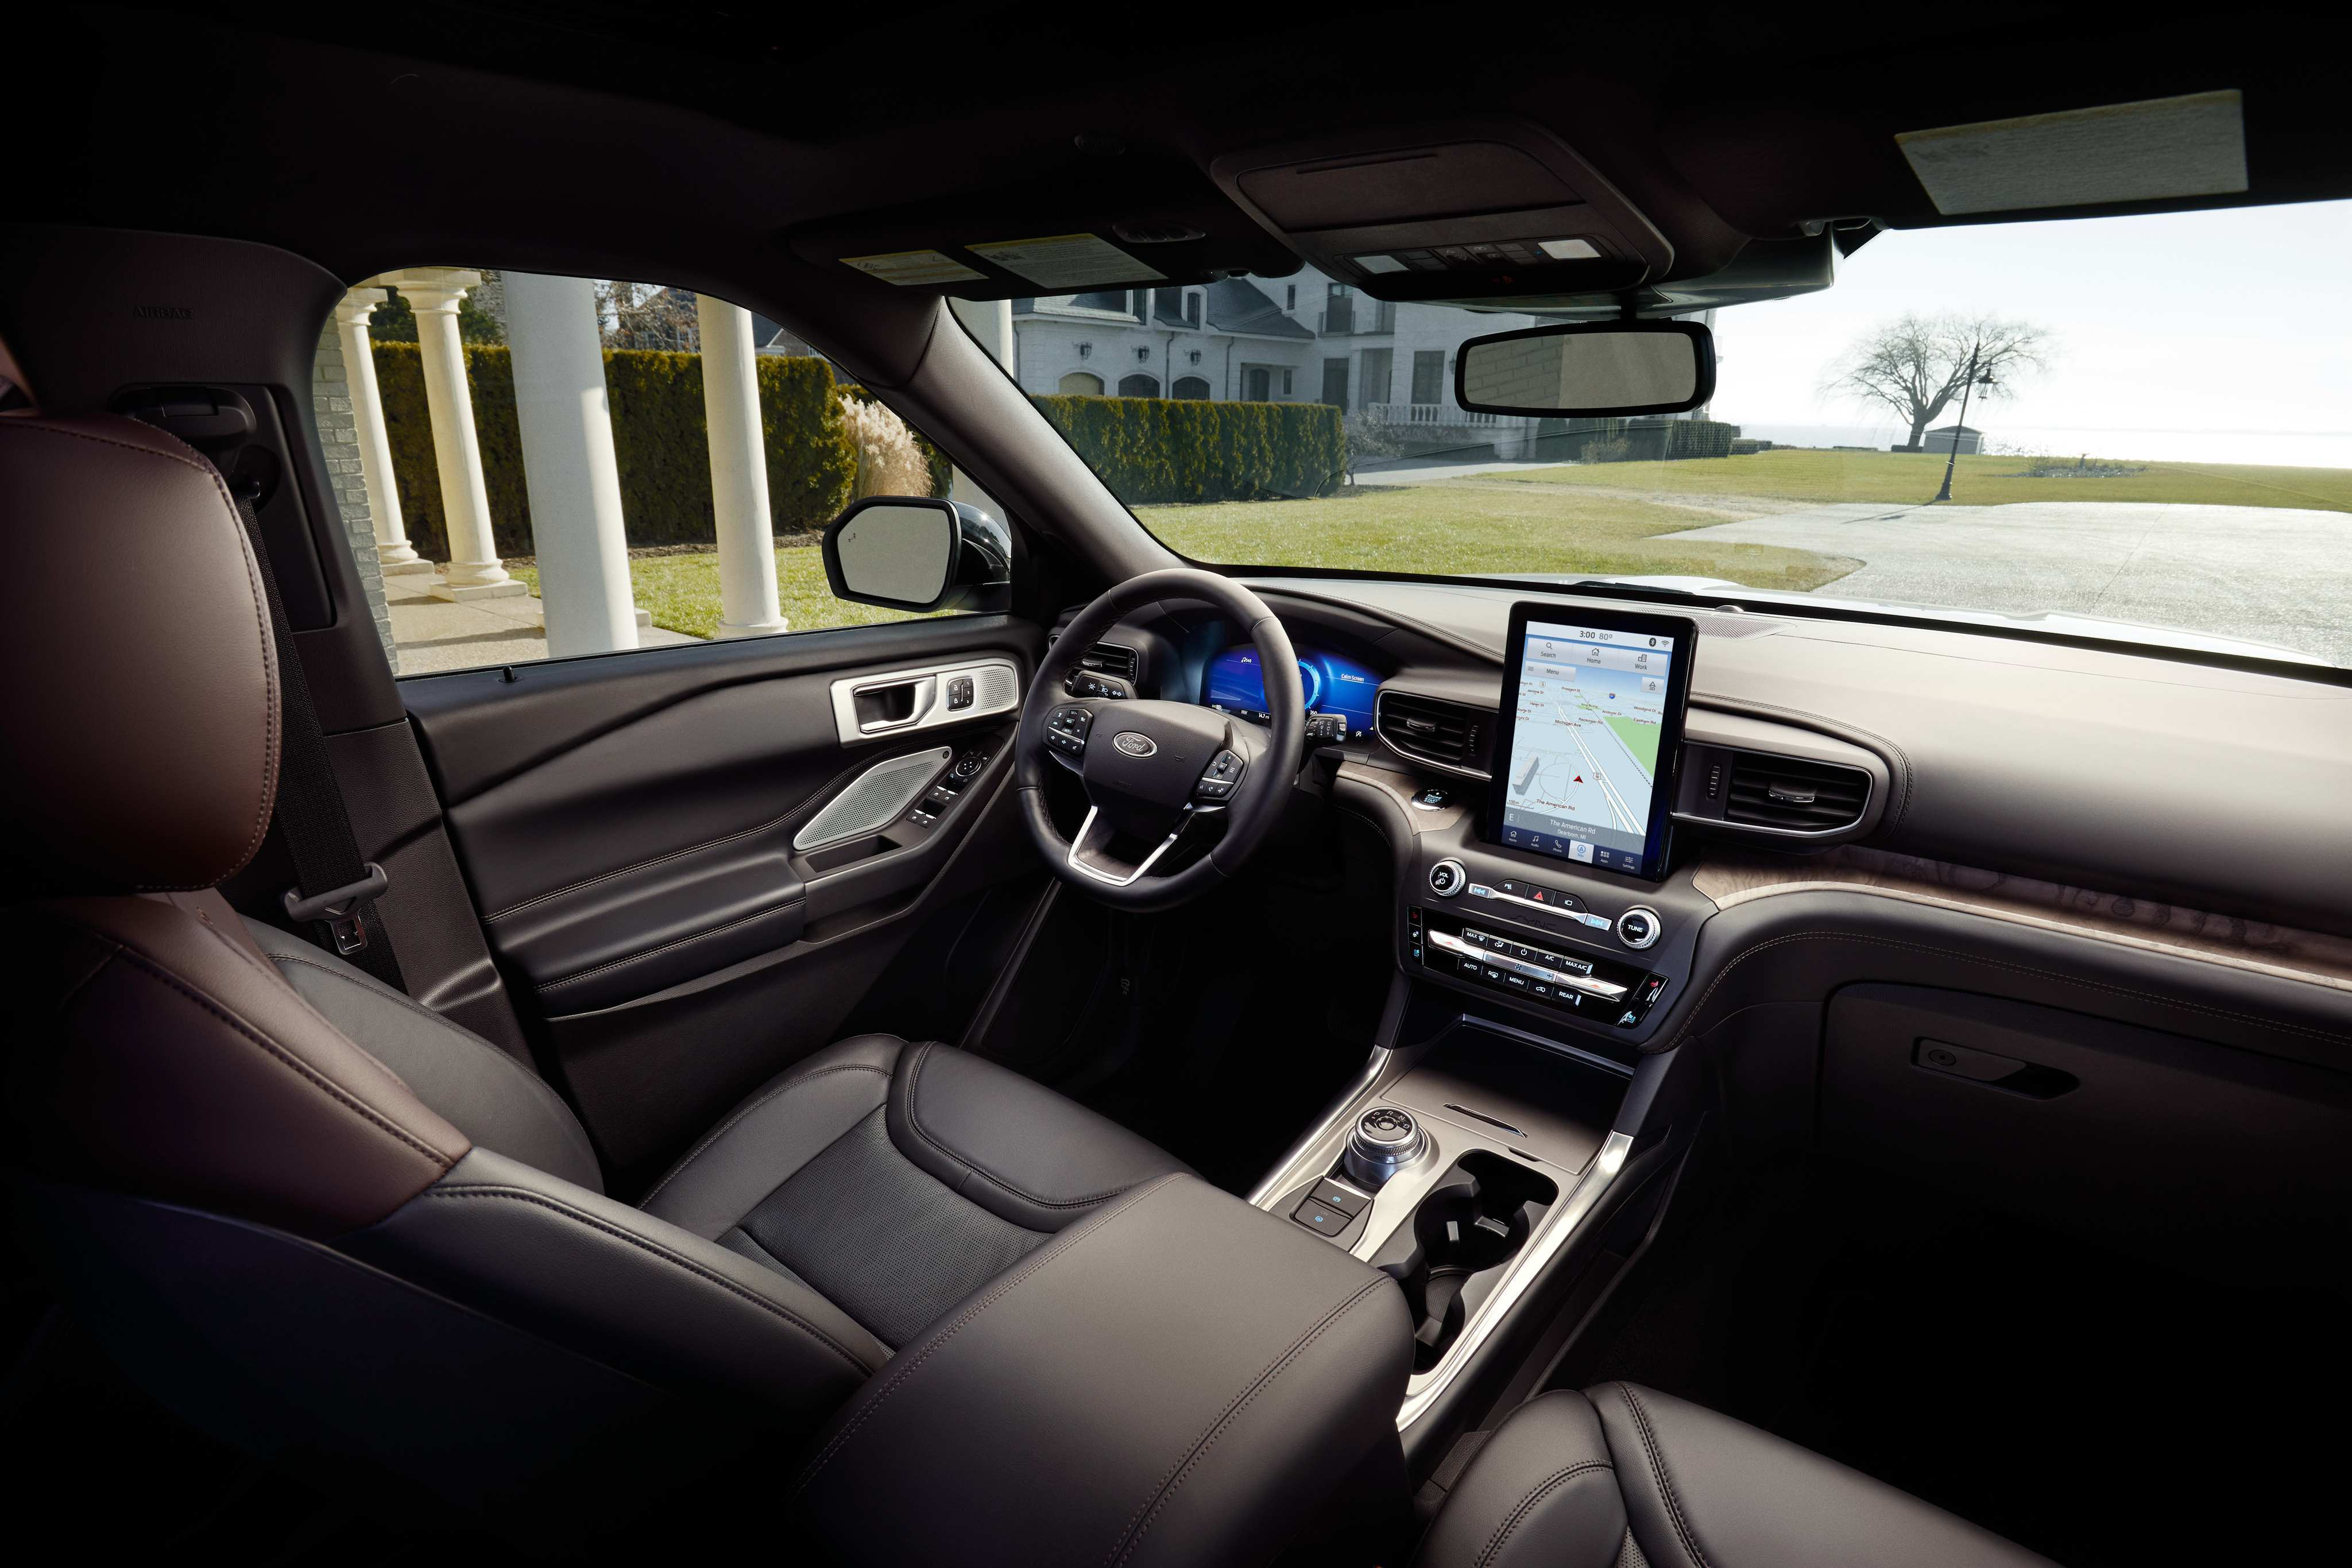 20 New Ford Explorer 2020 Interior Picture